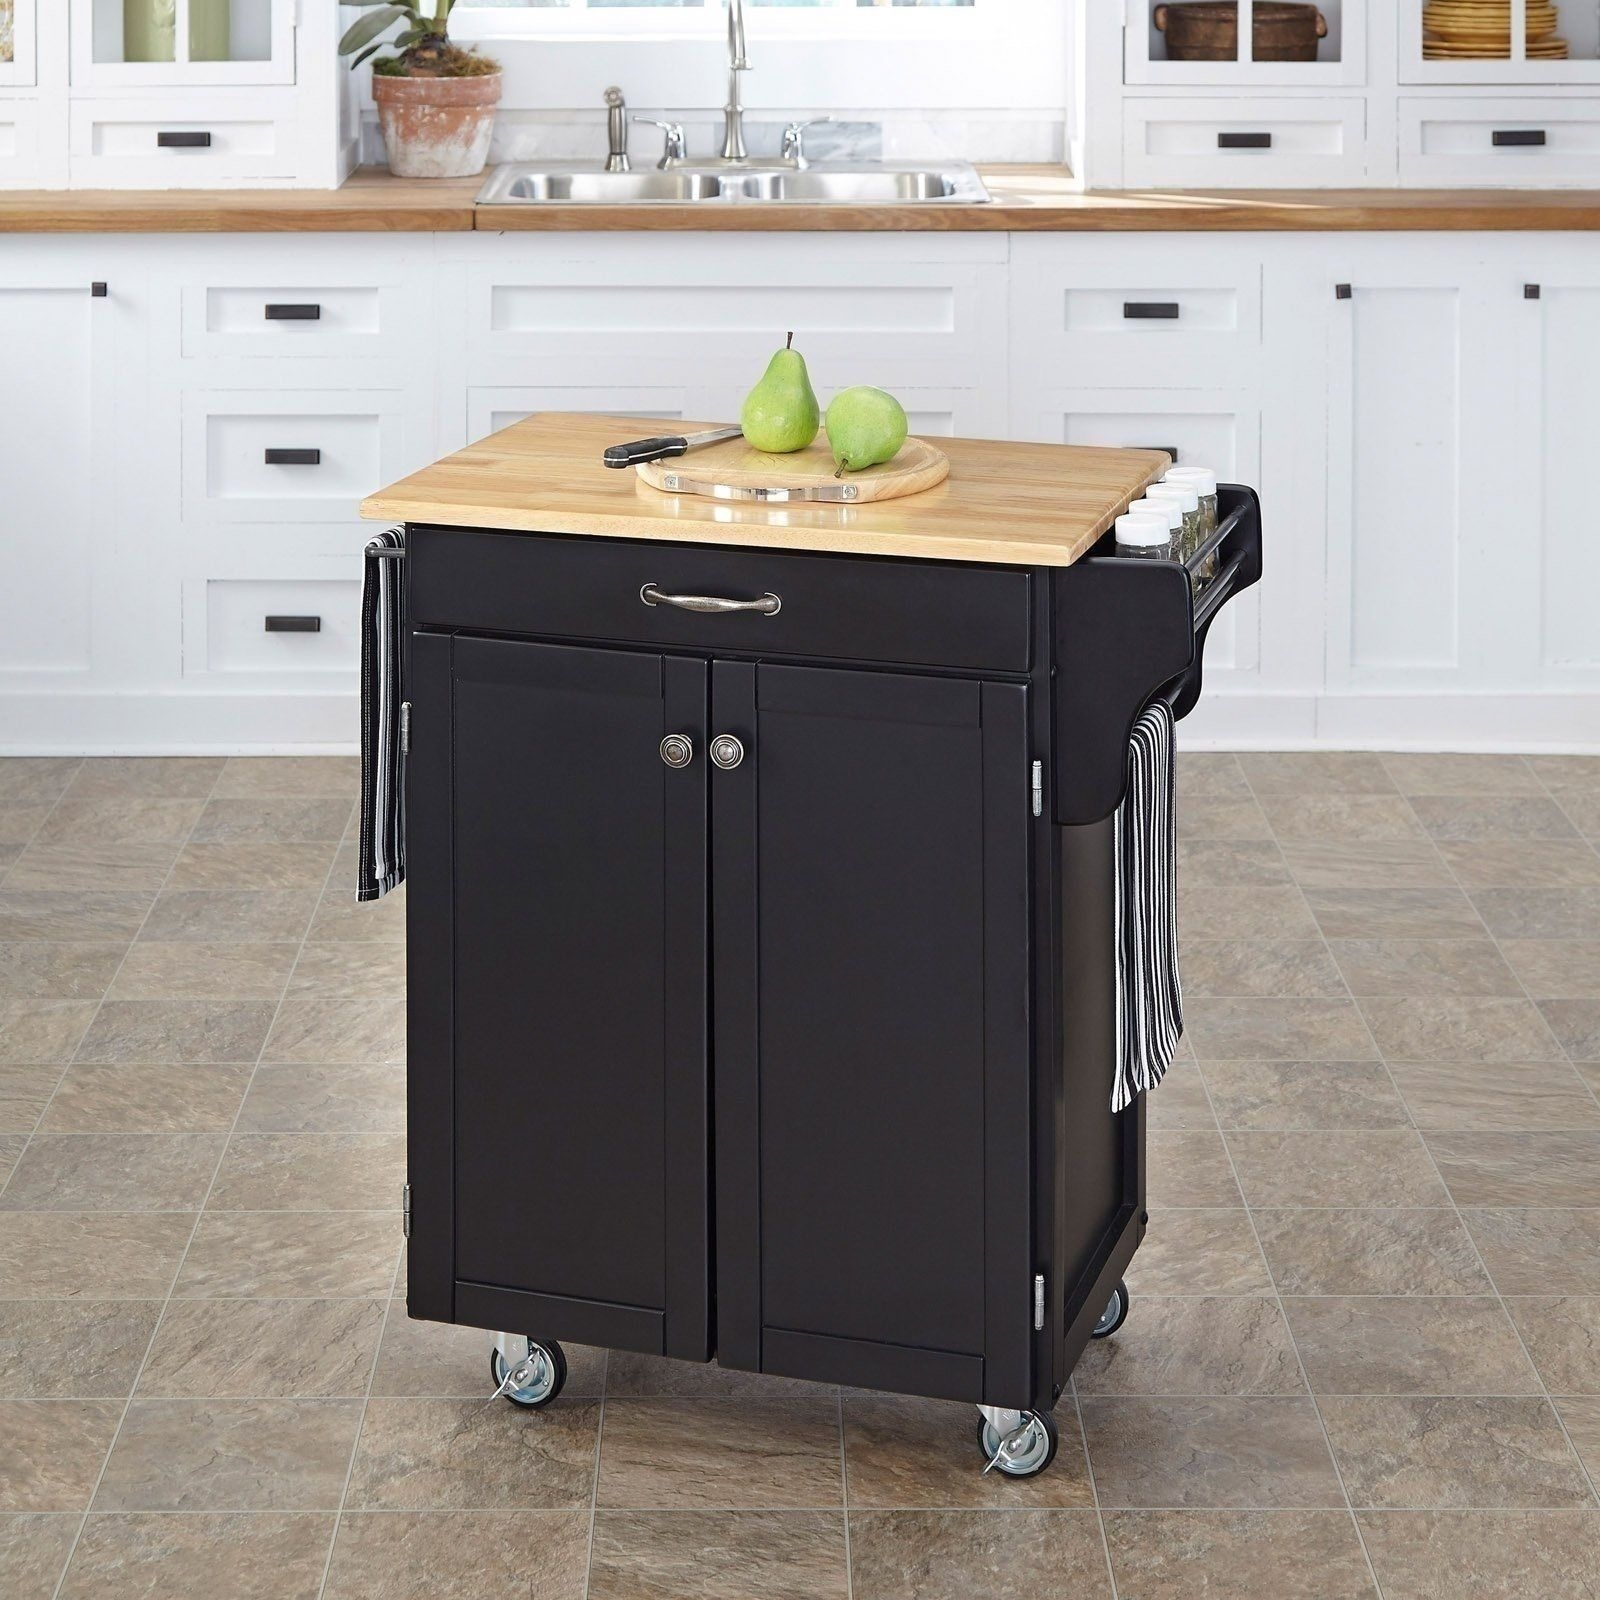 cutting board kitchen island new wood kitchen trolley cart island butcher block cutting 17105